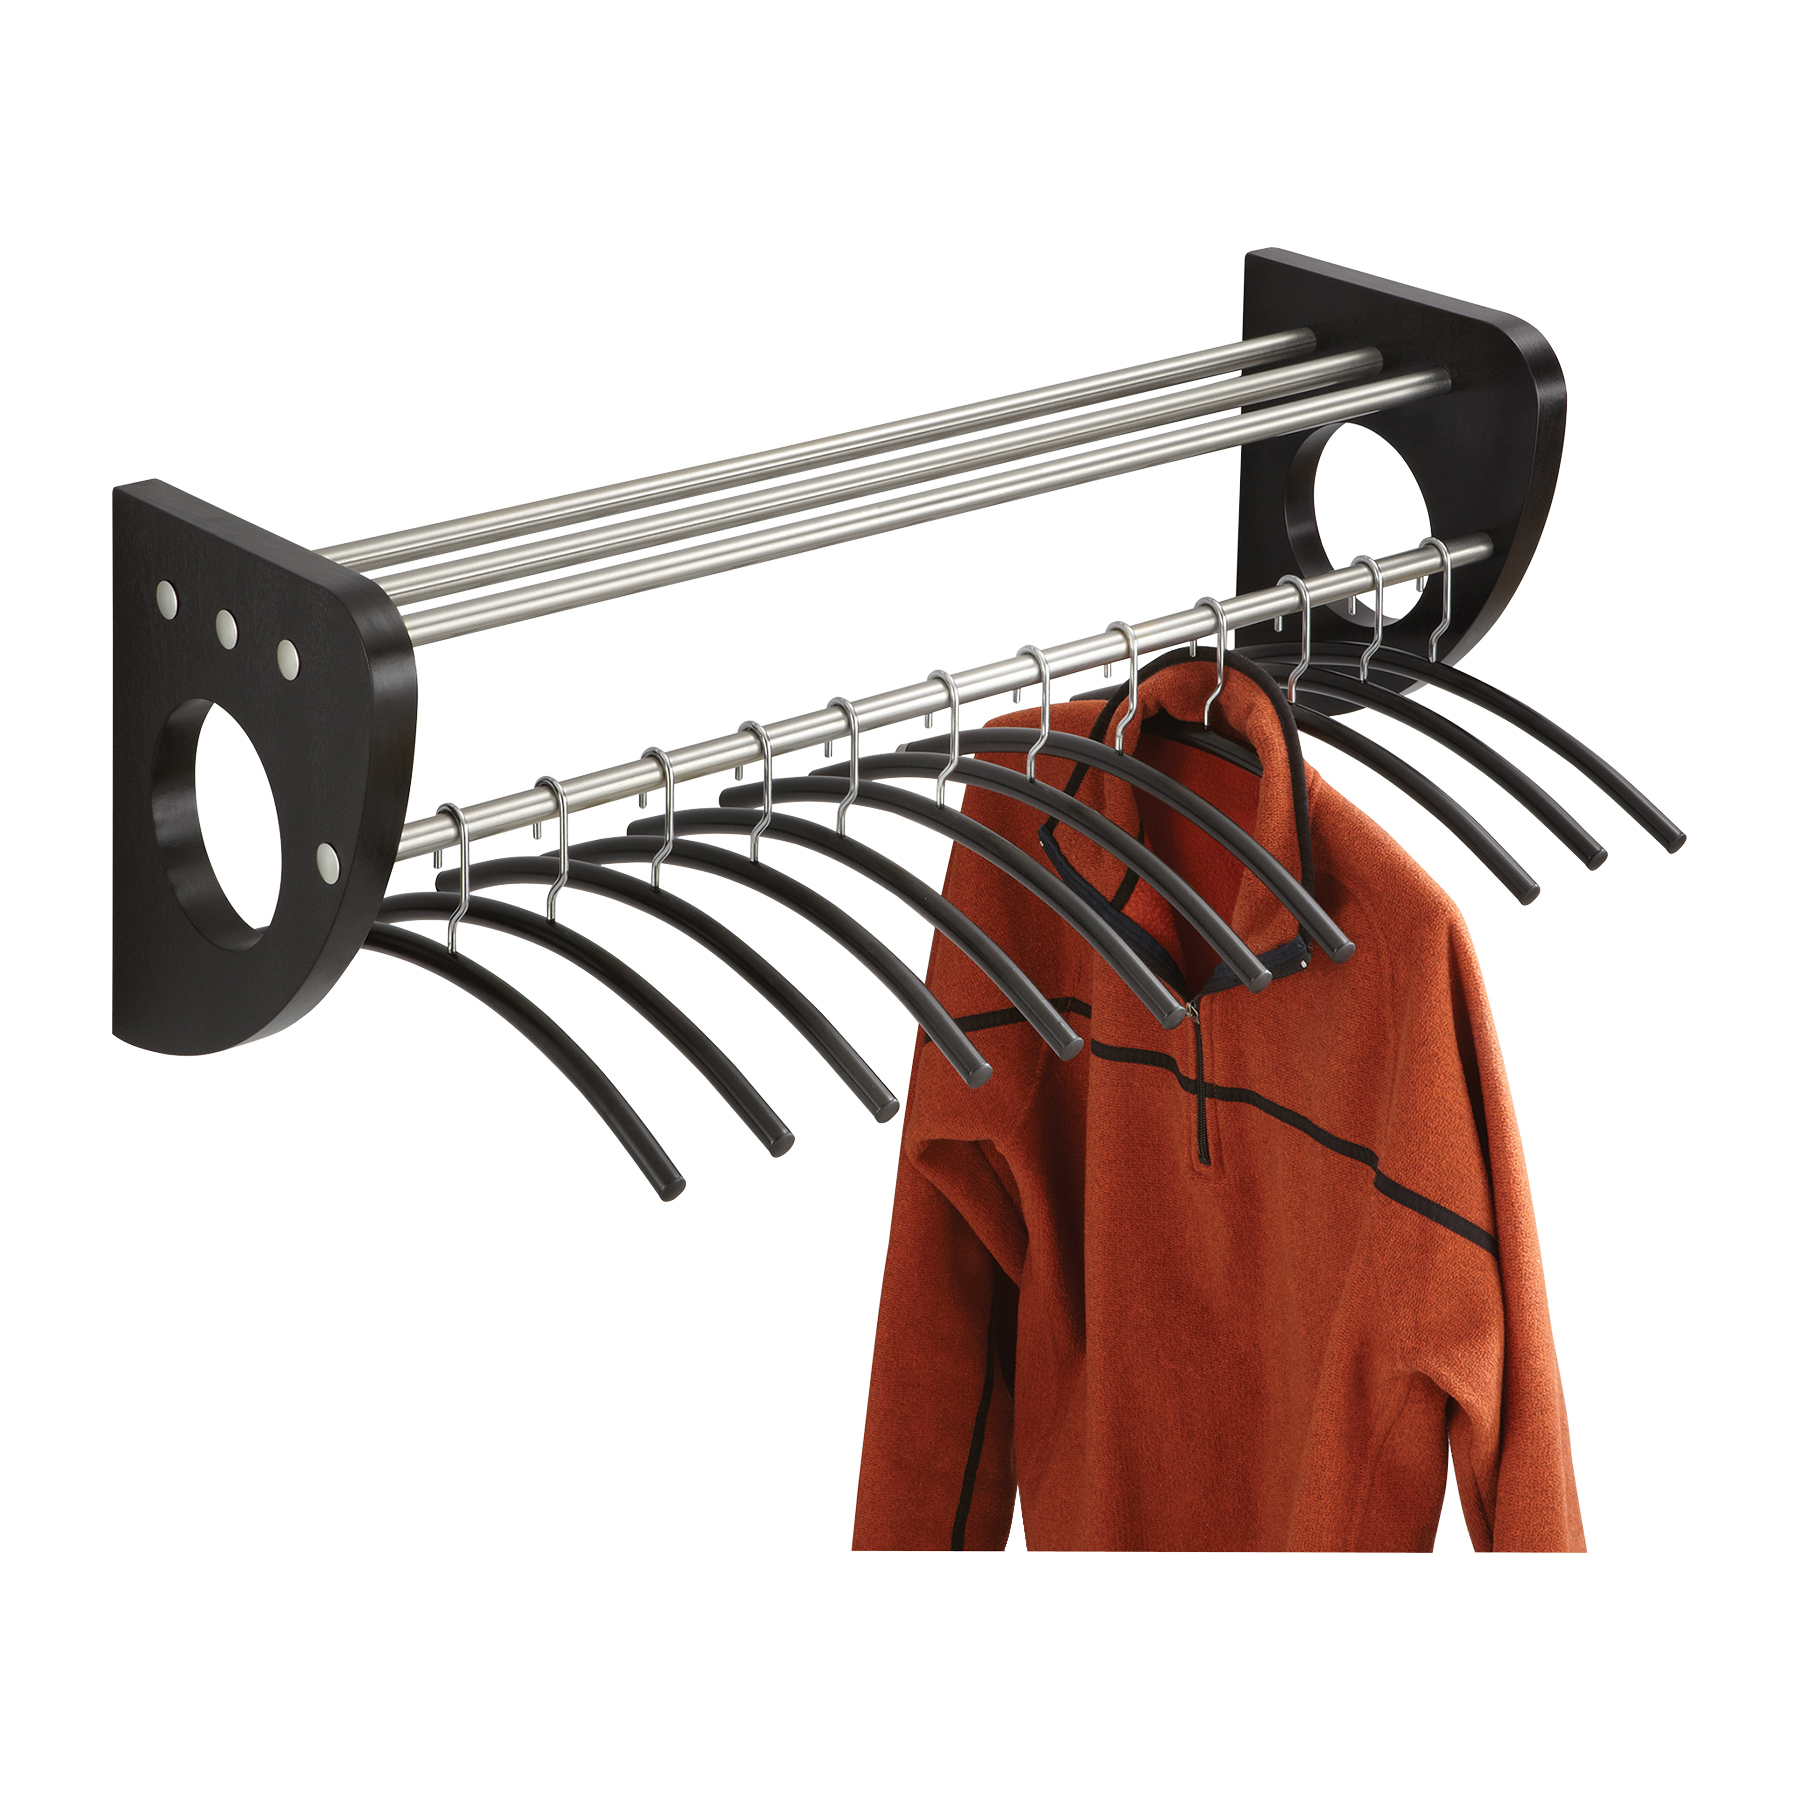 Safco 4212BL Coat Racks Mode 36 In Wood Wall Coat Rack With Hangers